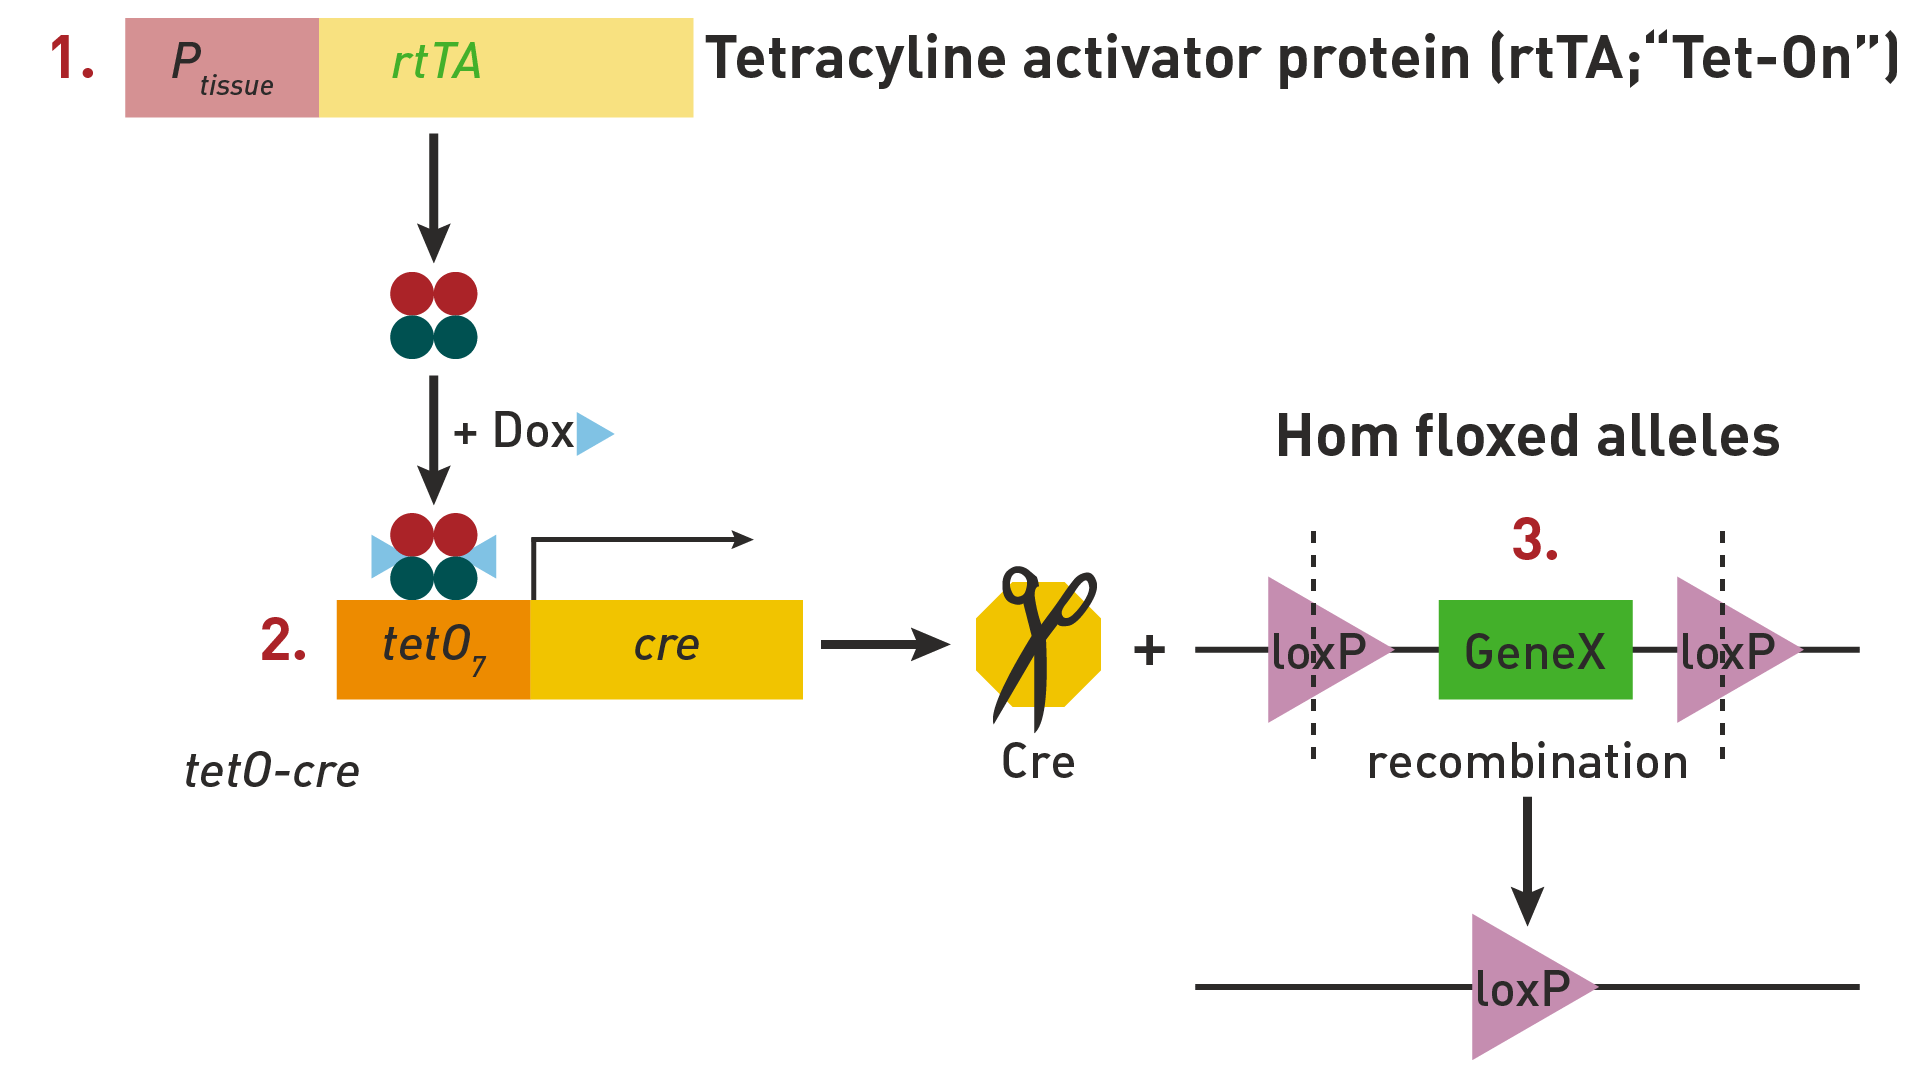 tetracycline activator protein